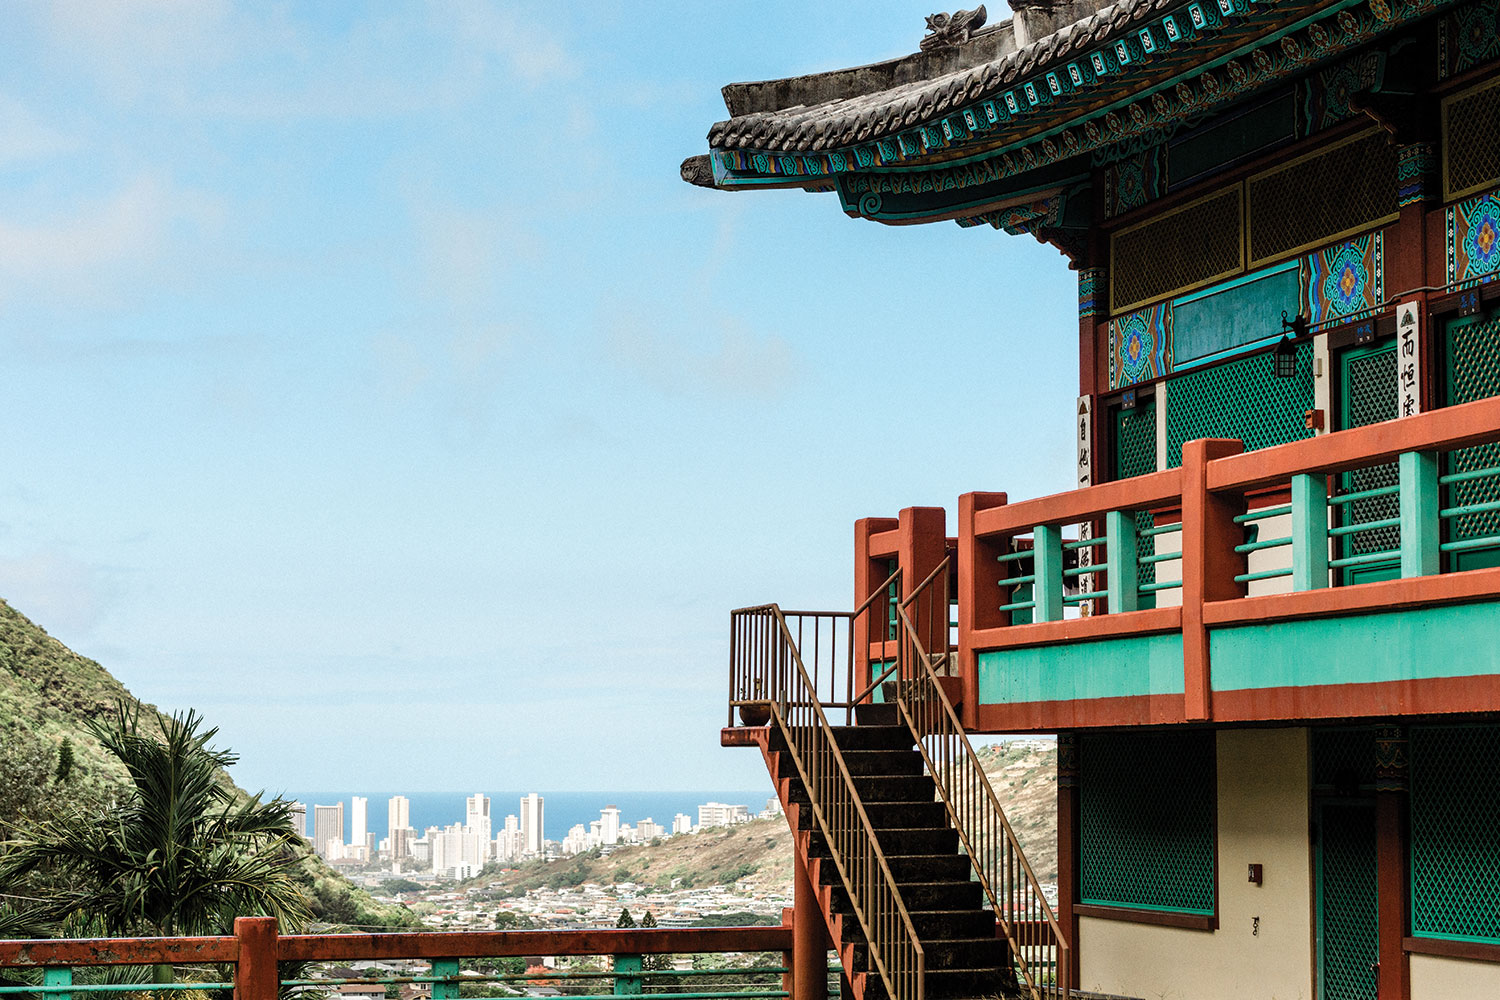 Corner of Korean Buddhist Temple in foreground with city skyline in background